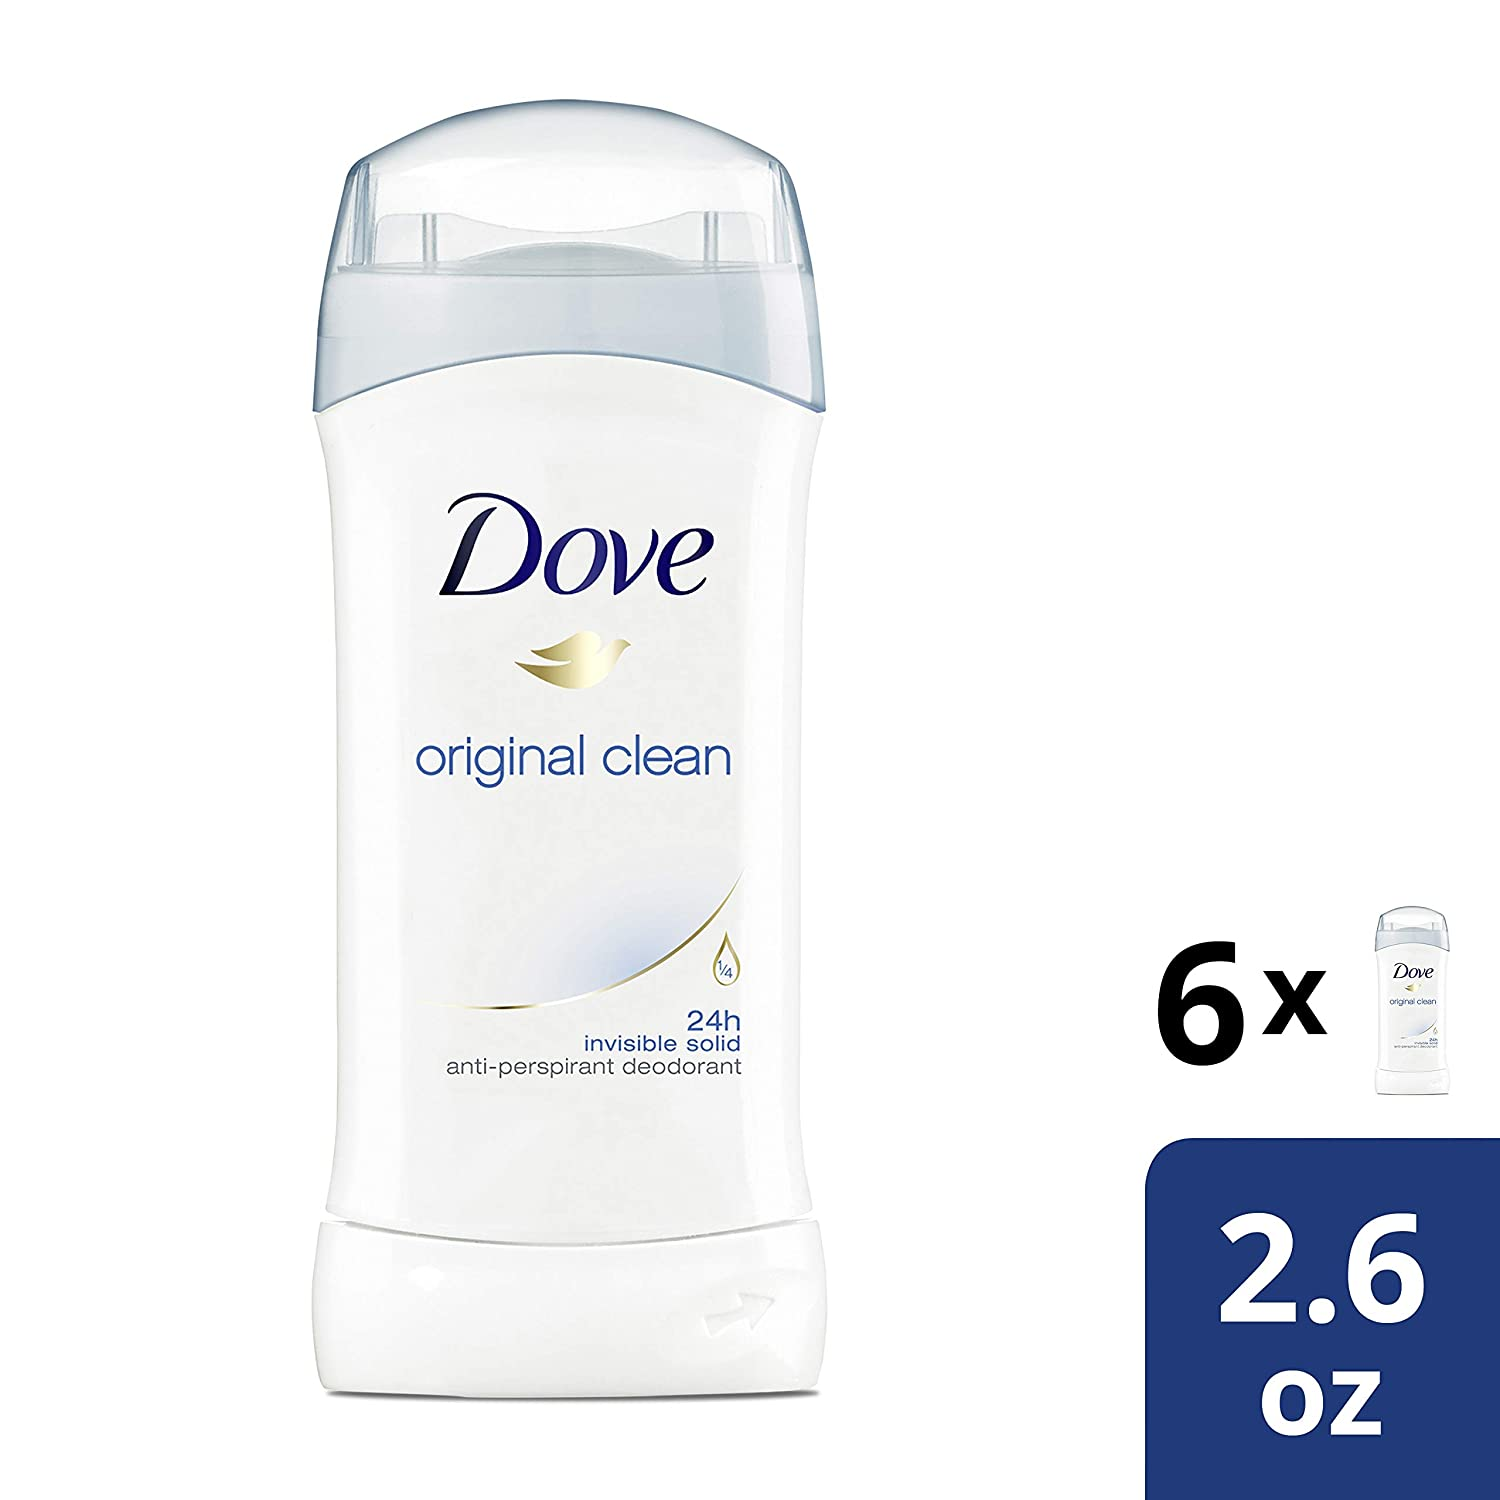 Dove Antiperspirant Deodorant Original Clean 2.6 Ounce (Pack of 6)